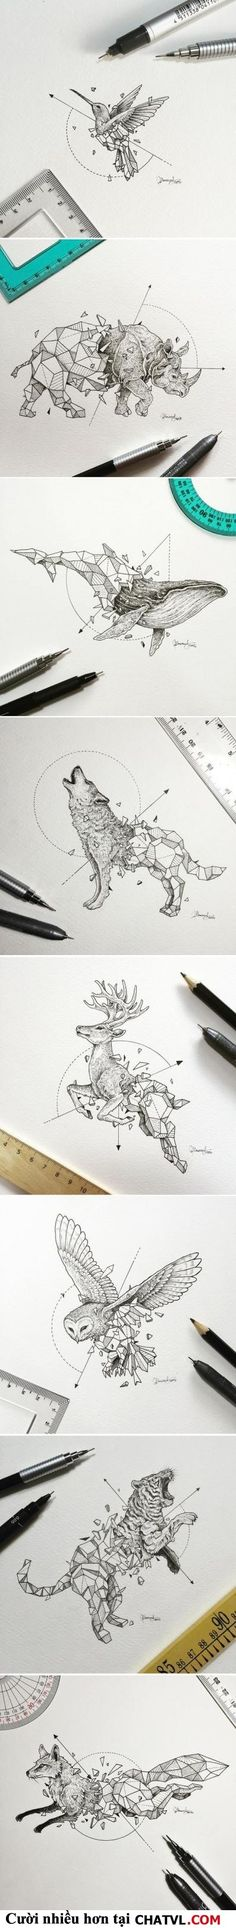 Cool animal drawings for tattoo ideas